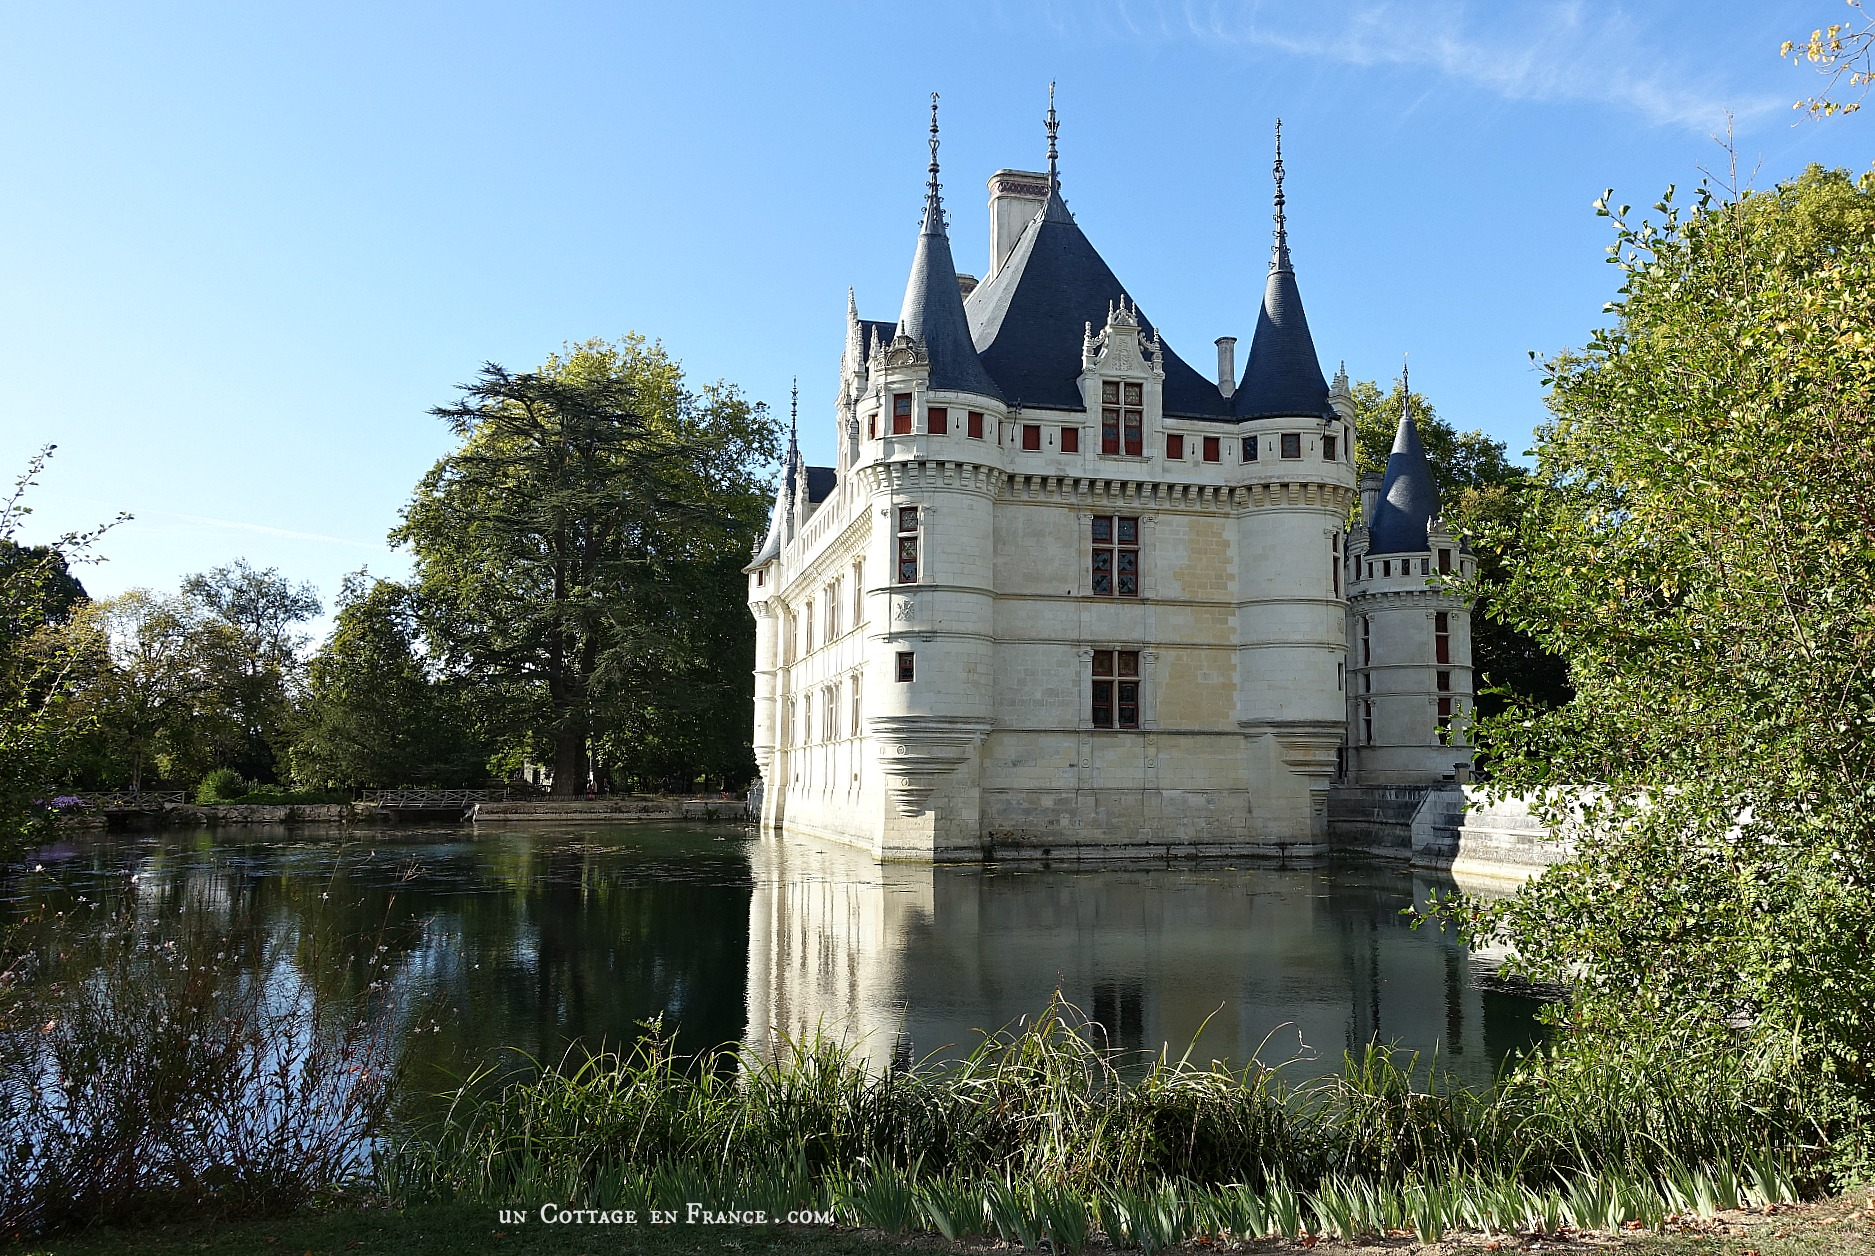 Chateau azay le rideau, chateau chic, french castle, french country chic, broderie au ruban, ribbon embroidery, french castle